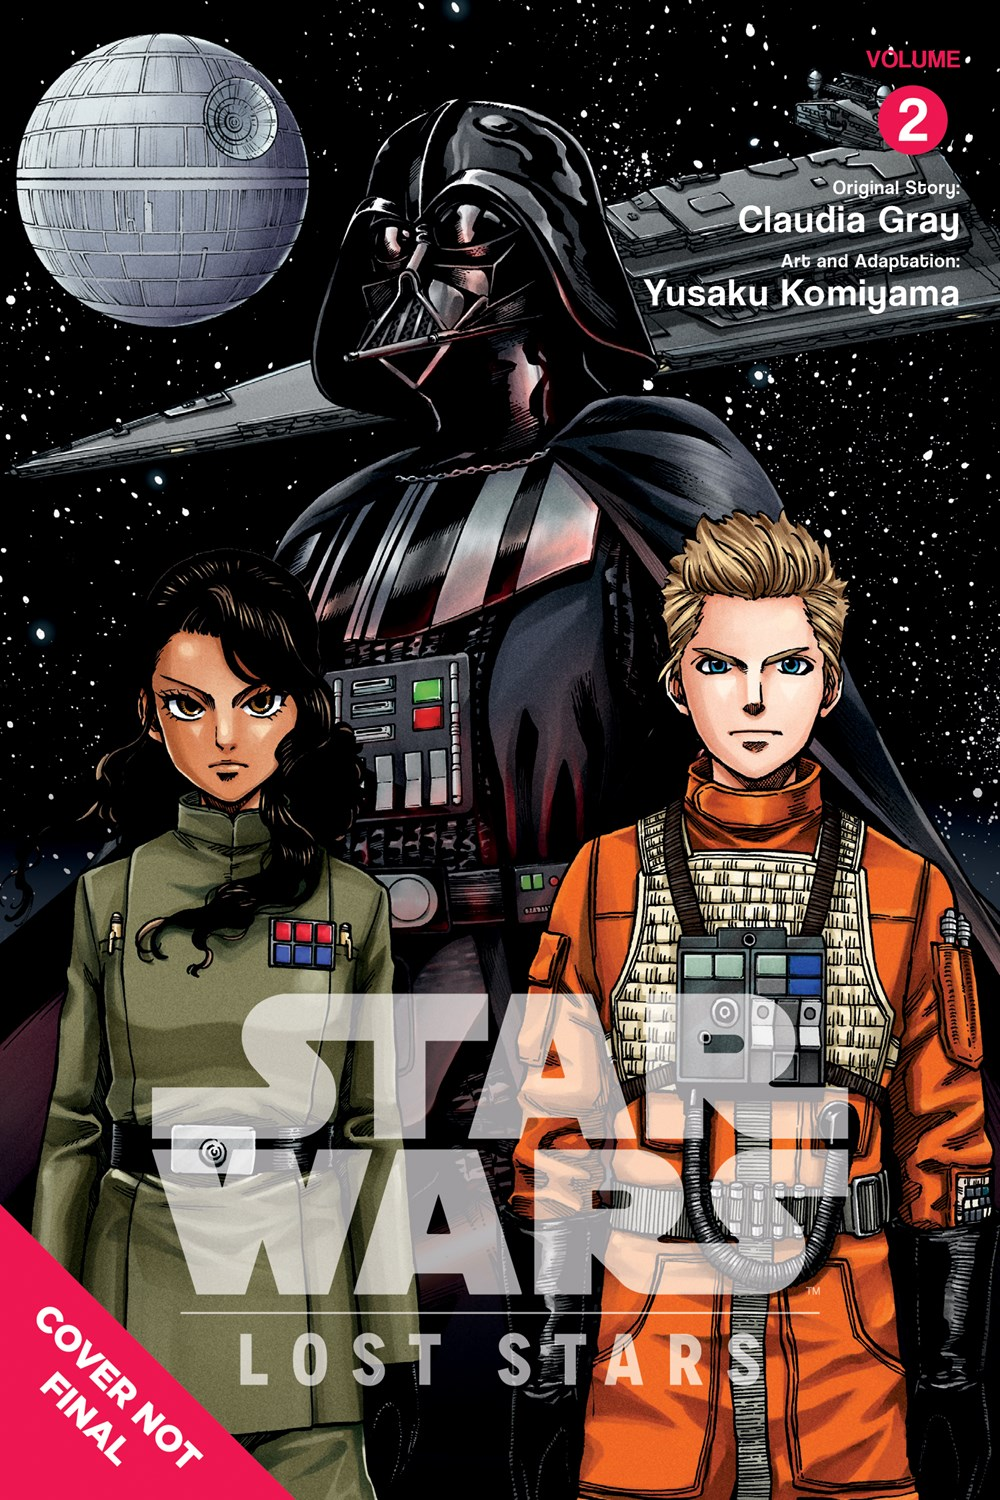 Star Wars Lost Stars Manga Volume 2